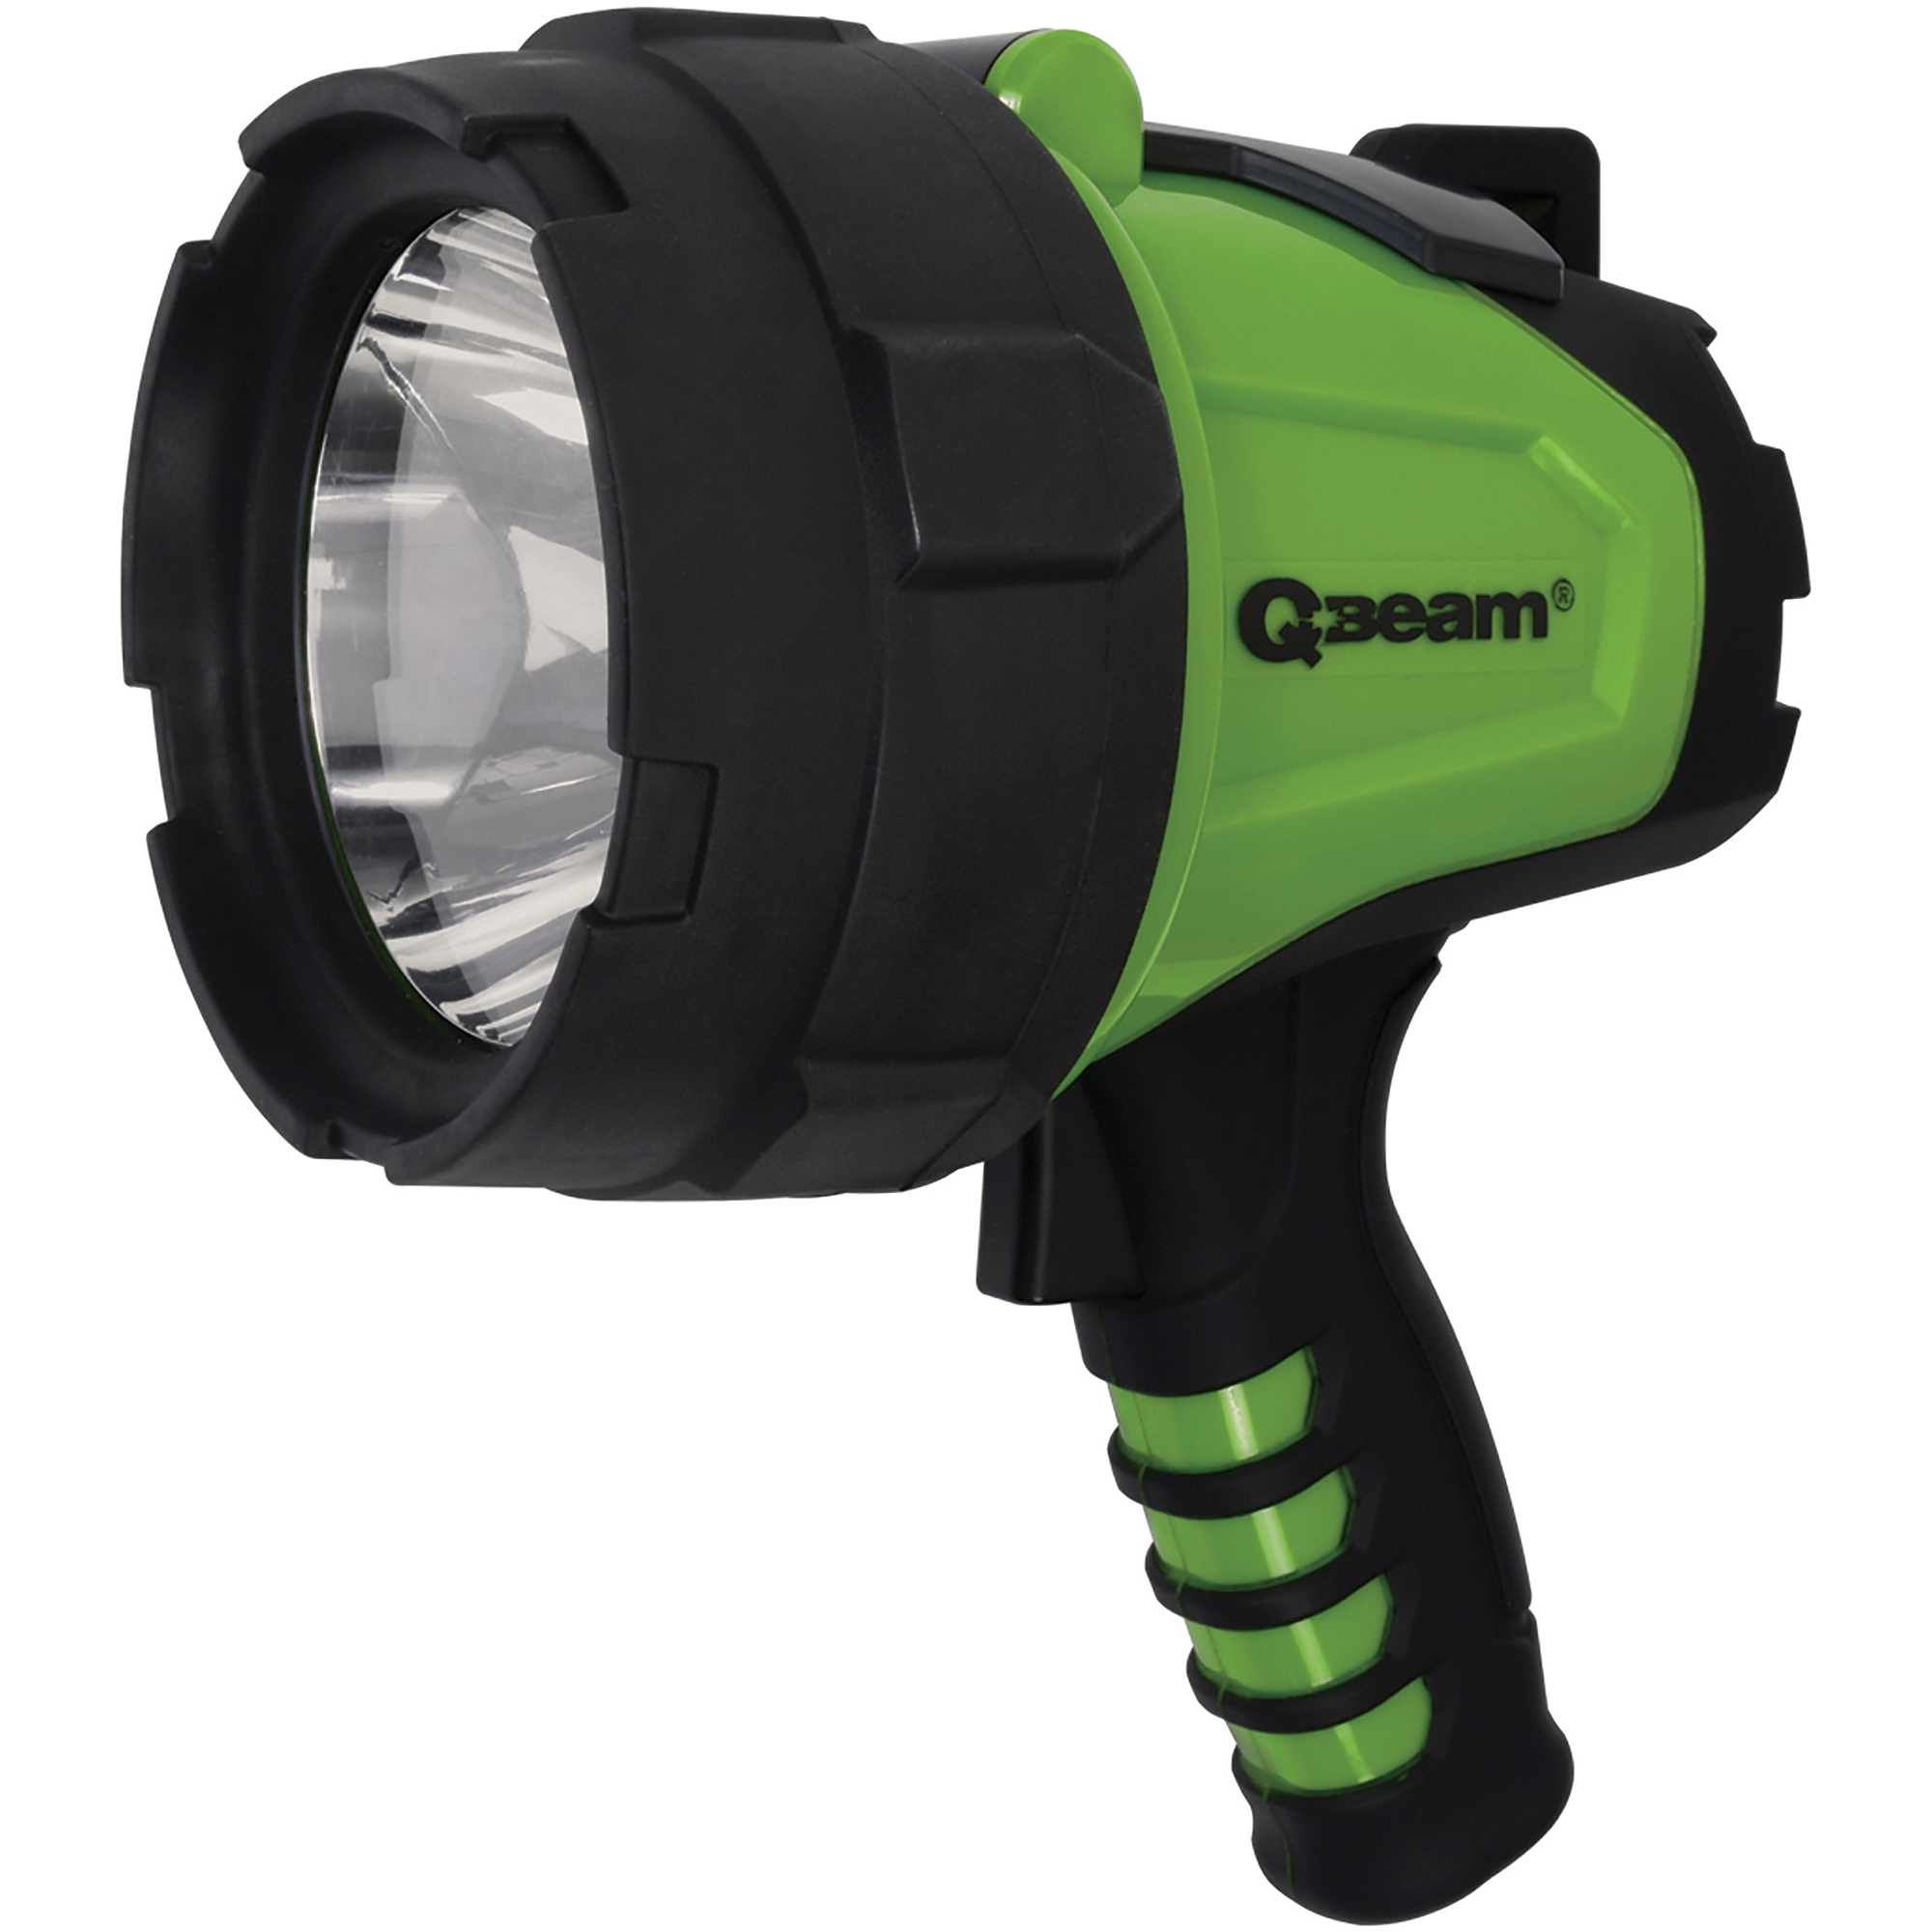 Click here to buy Q-Beam 5W LED Lithium Rechargeable Spotlight by Brinkmann.